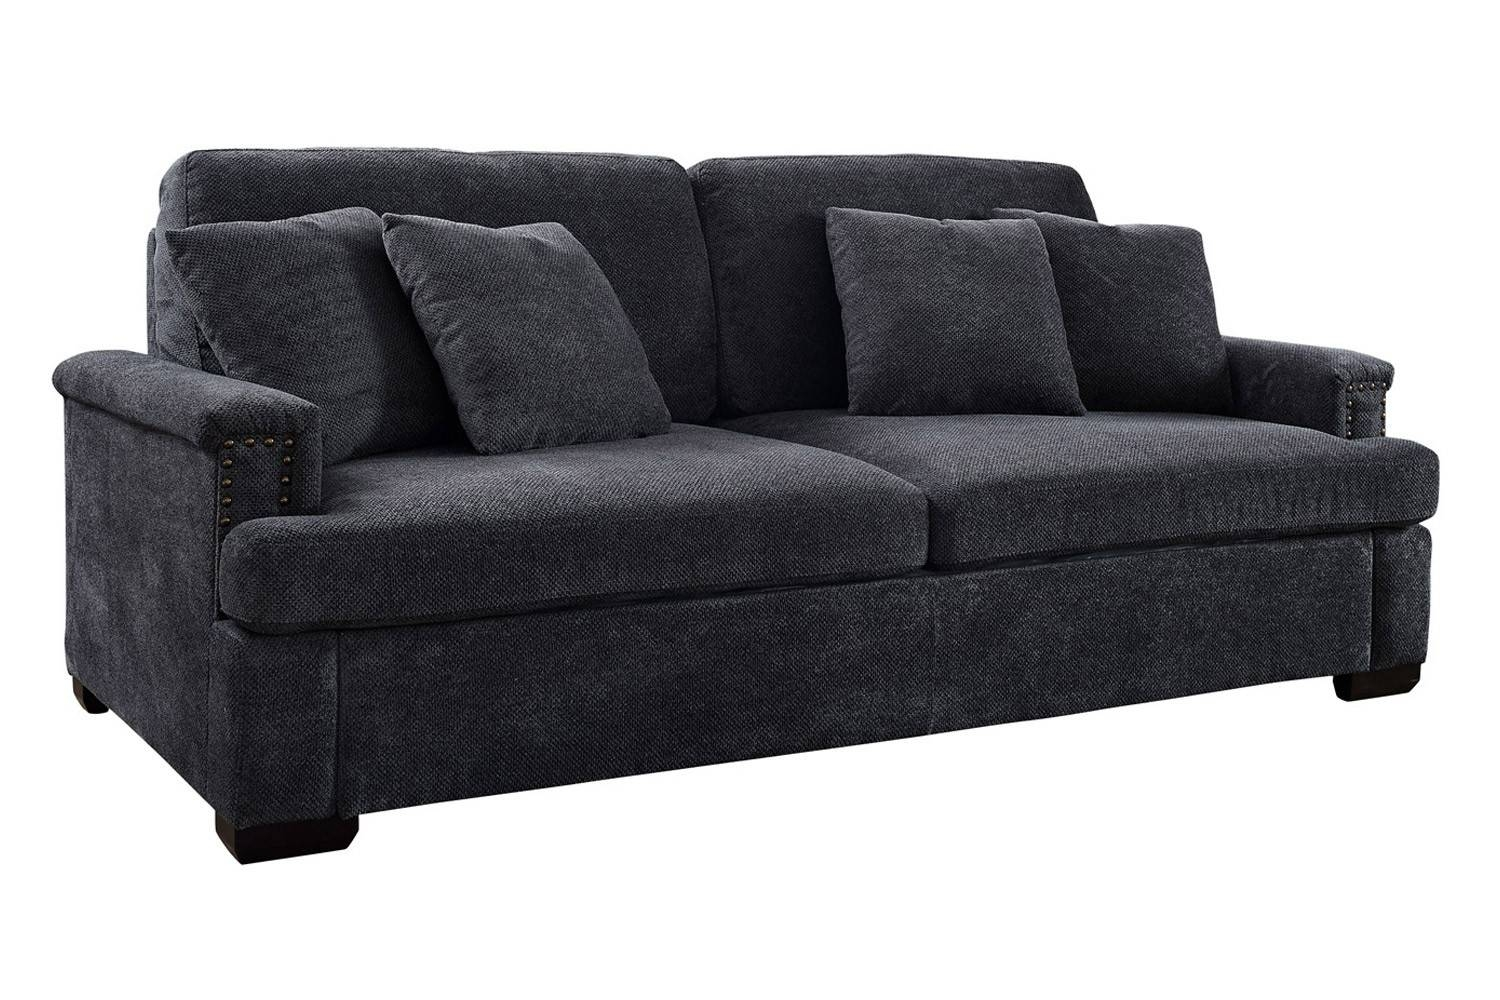 Shipping Futons To Louisiana   Futon Sofa Beds Delivered To With Futon Couch Beds (View 11 of 15)